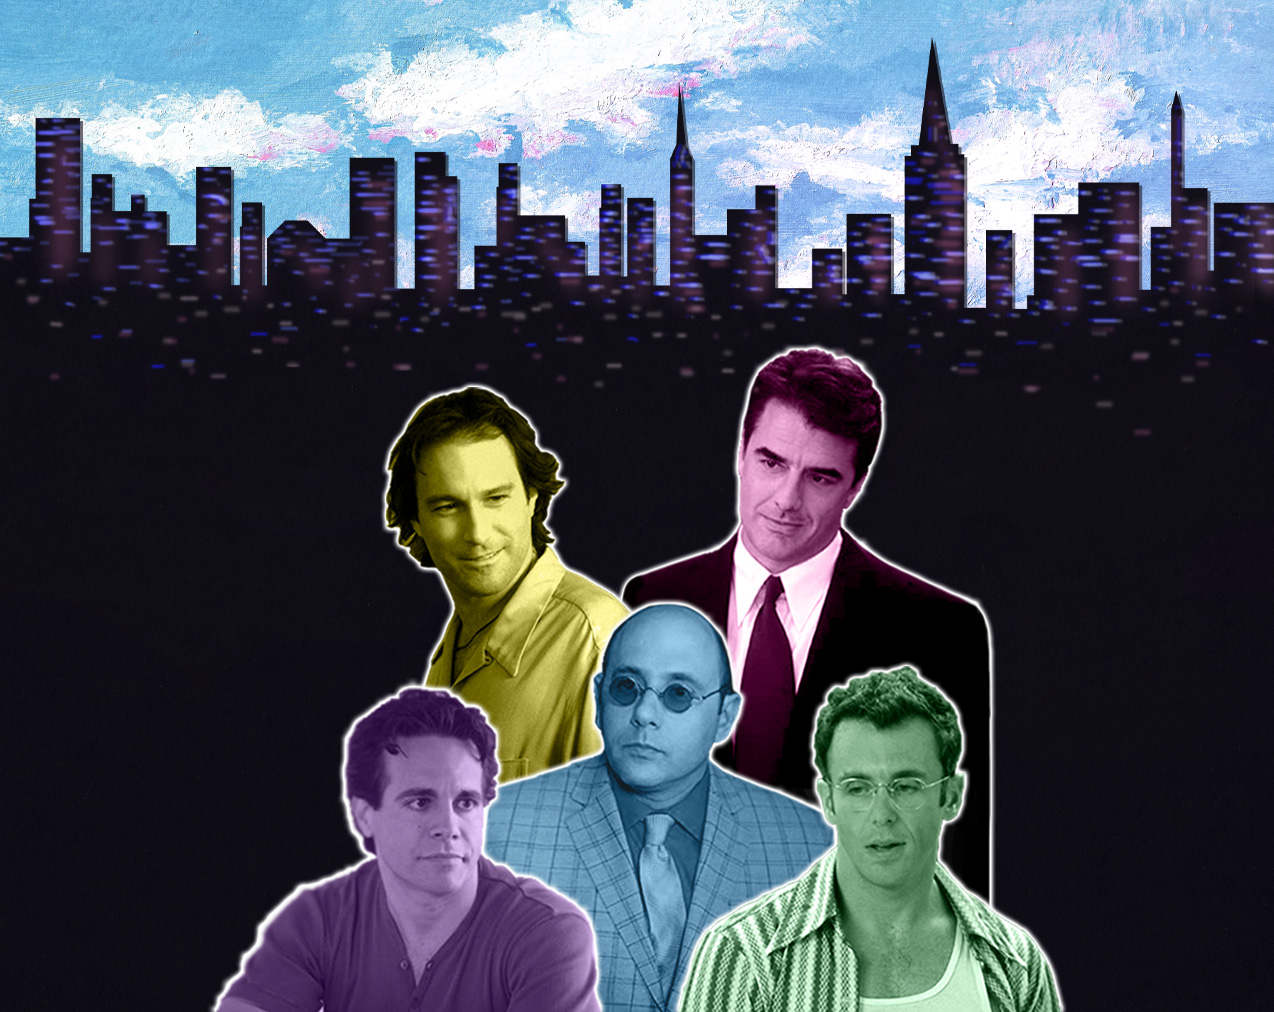 Digital collage featuring photographs of the 5 male characters from Sex and The City layered on top of the New York skyline.